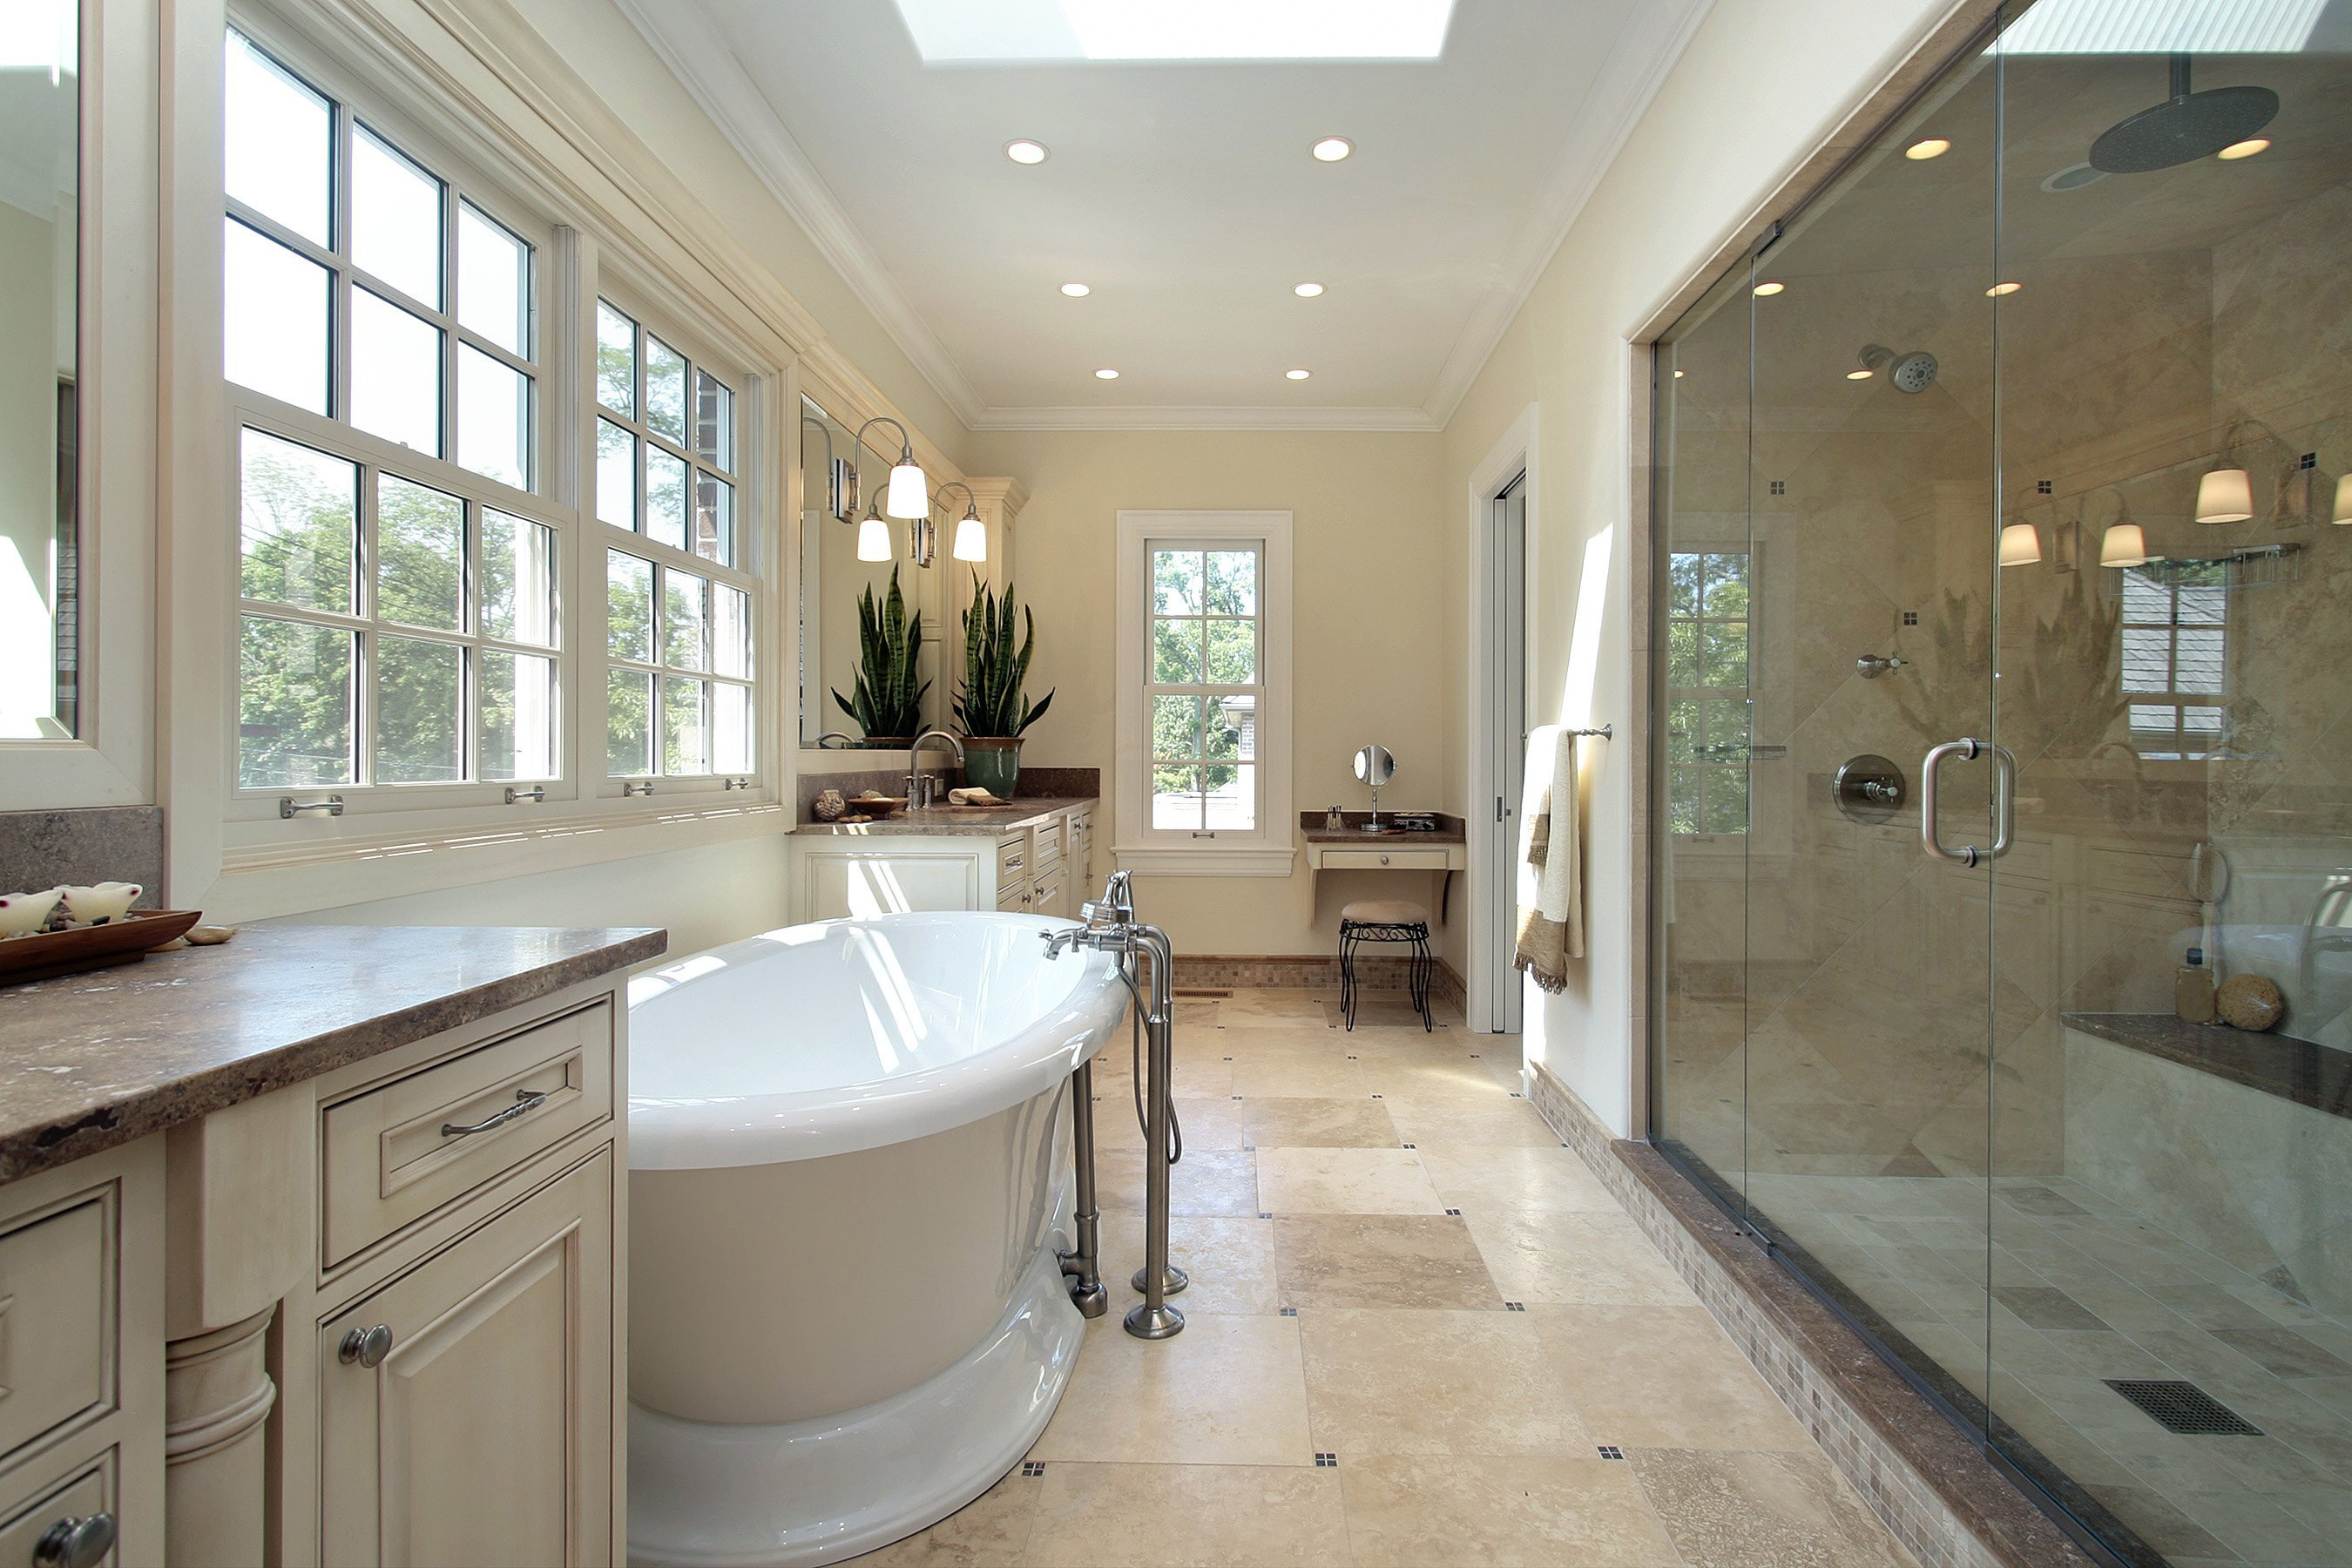 Chicago Bathroom Remodel Plans chicago general contracting and construction services